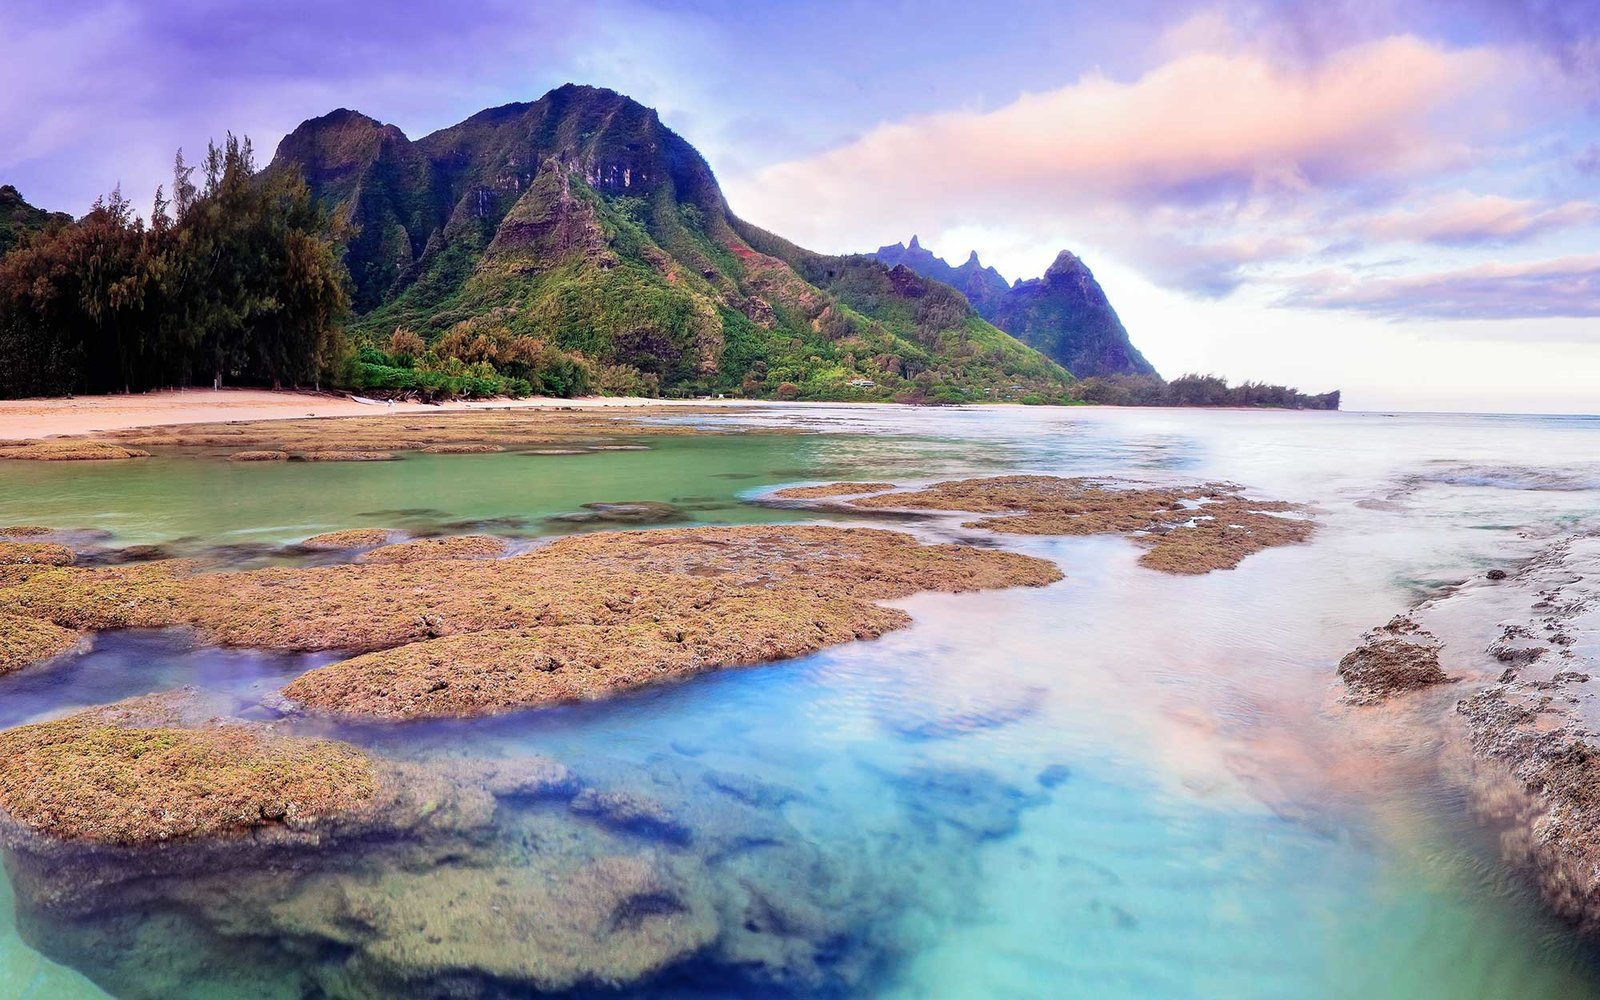 Tunnels beach and Bali Hai point on the north shore of Kauai, Hawaii, USA